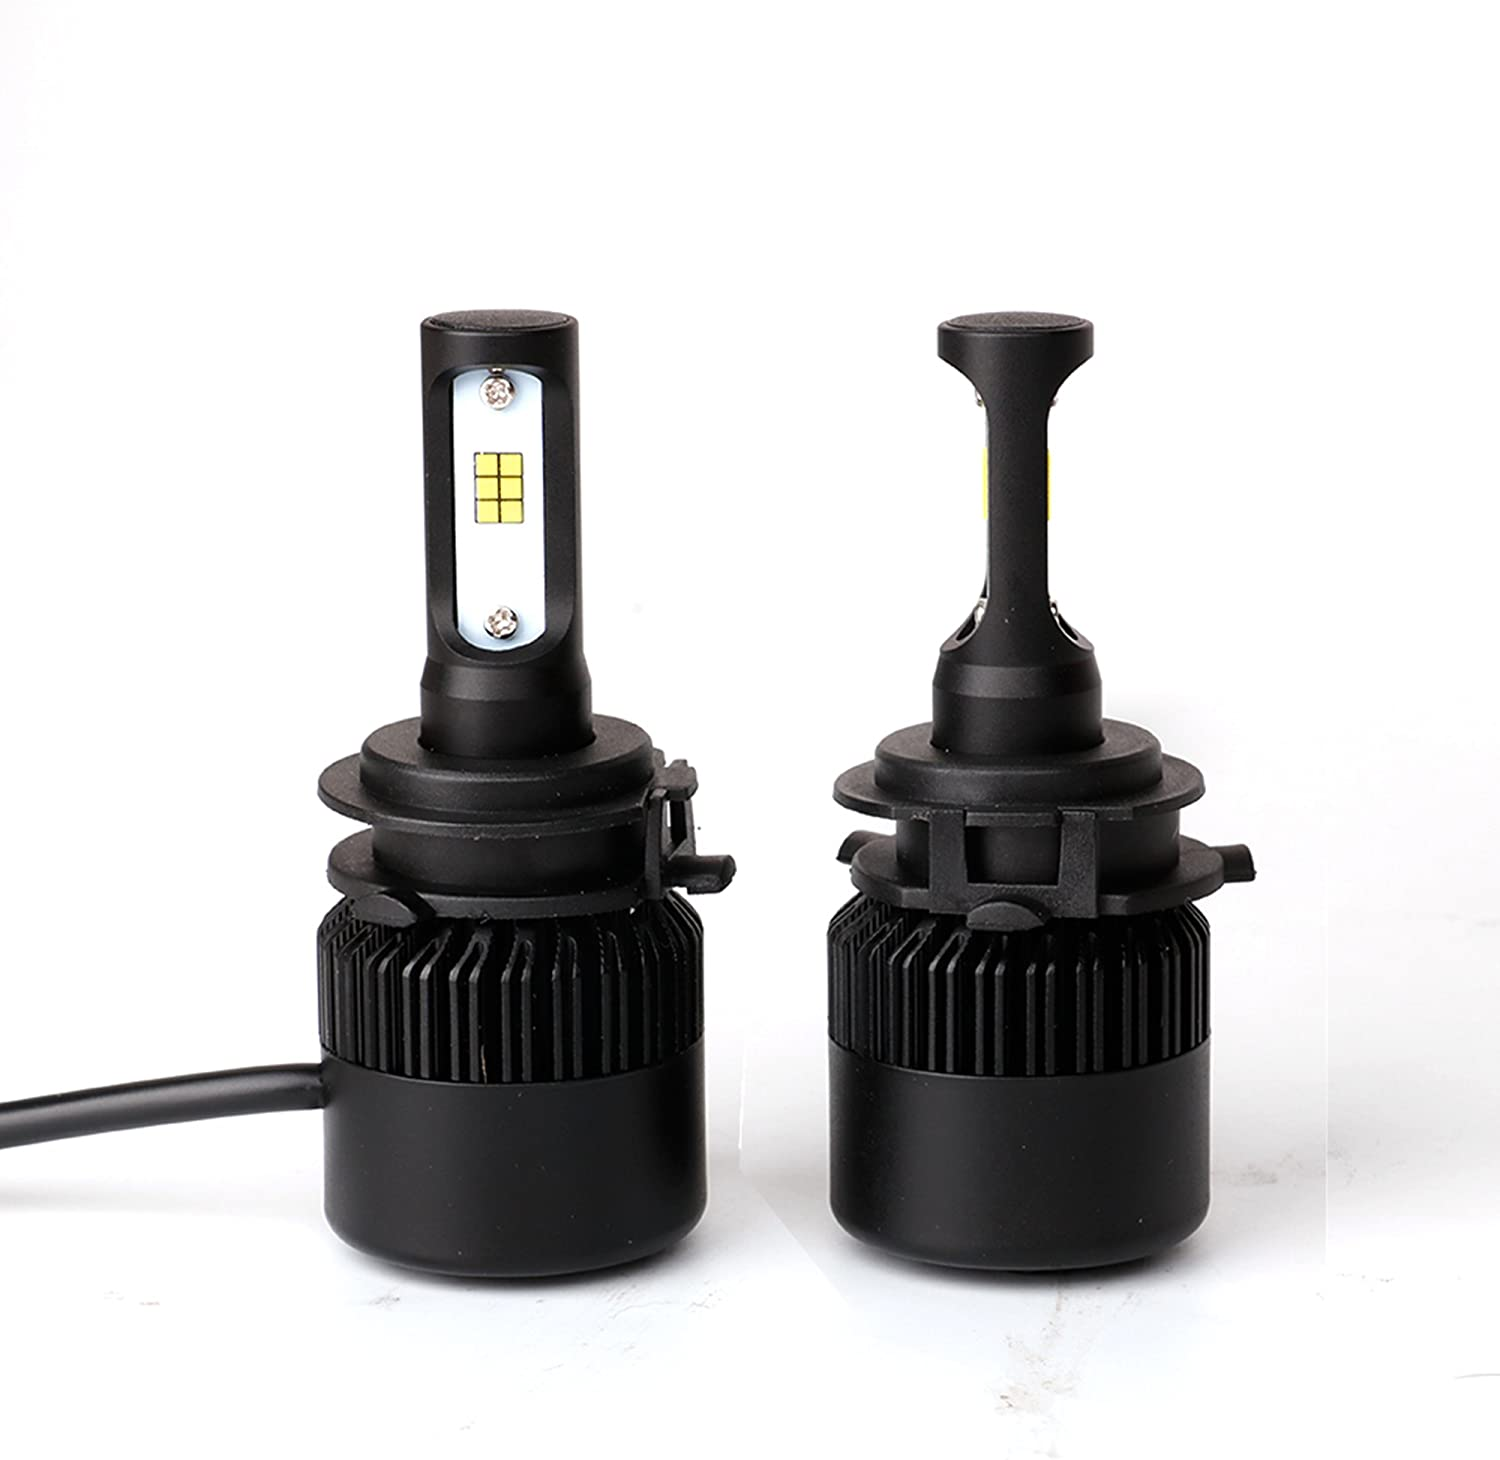 H1 LED Headlight Bulb Retainers for Conversion Kit Holder Adapter High Beam Compatible and Fits for Honda - PAIR Check Bulbs Locking Assembly Fits Various Honda Accord Civic CR-V Odyssey